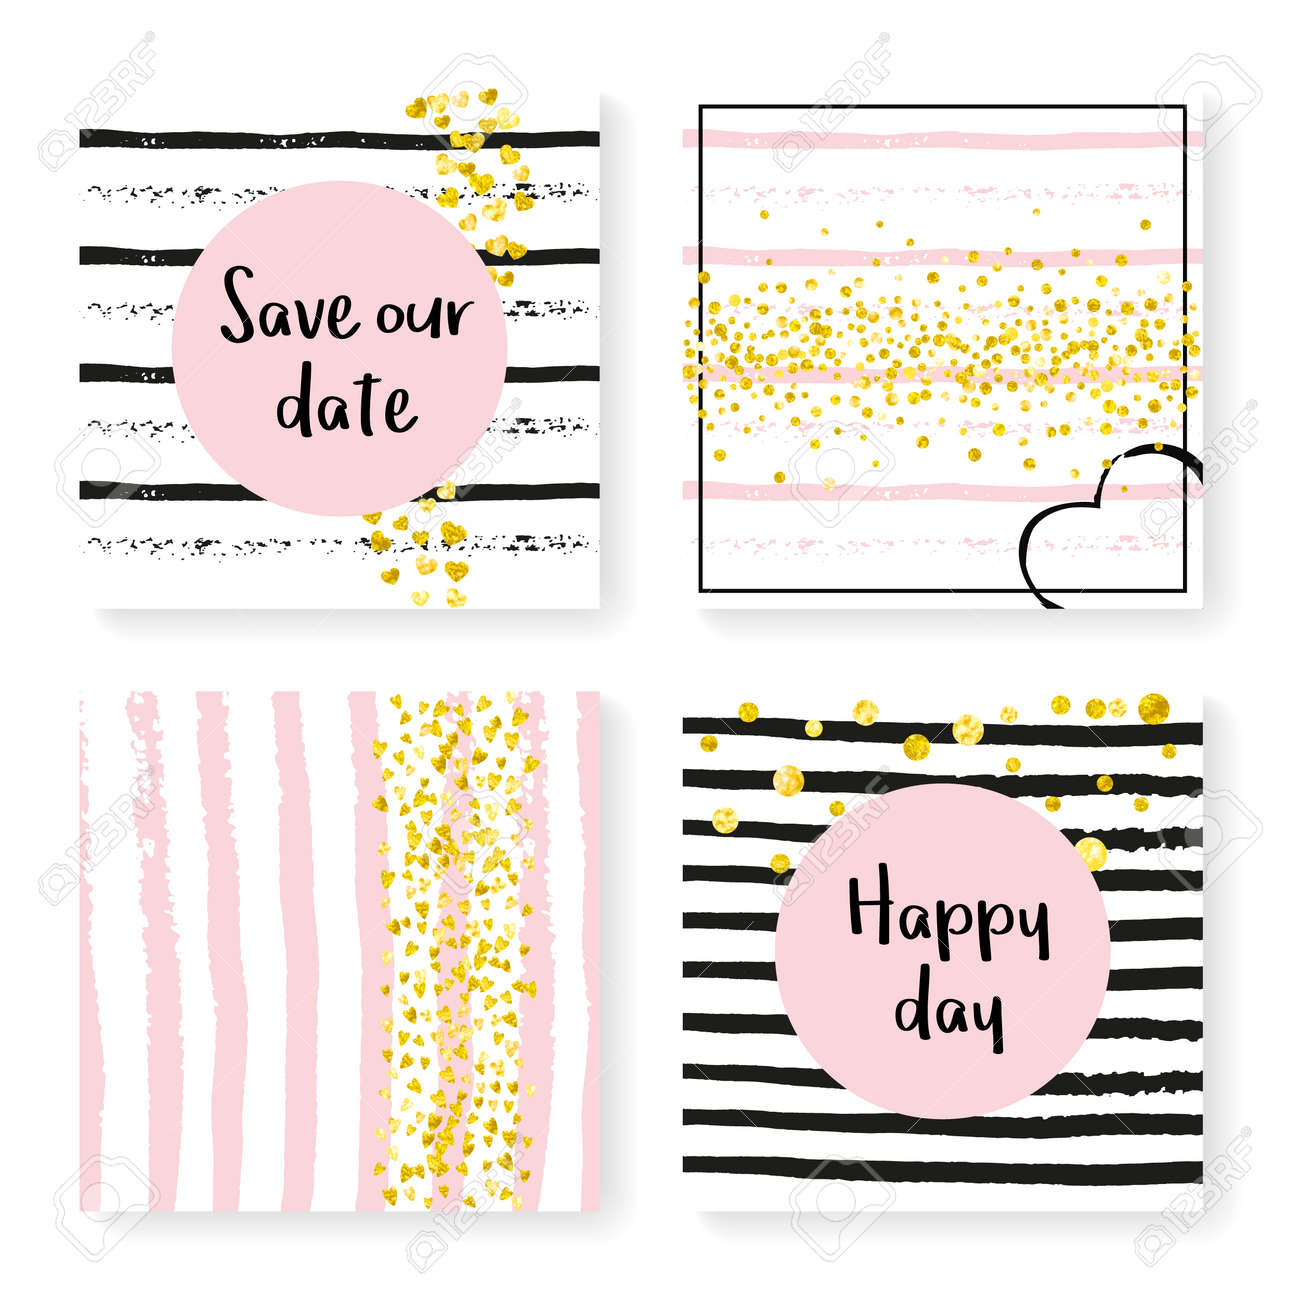 8bdbe9259 Gold hearts and dots on black and pink background. Template with wedding  glitter for party